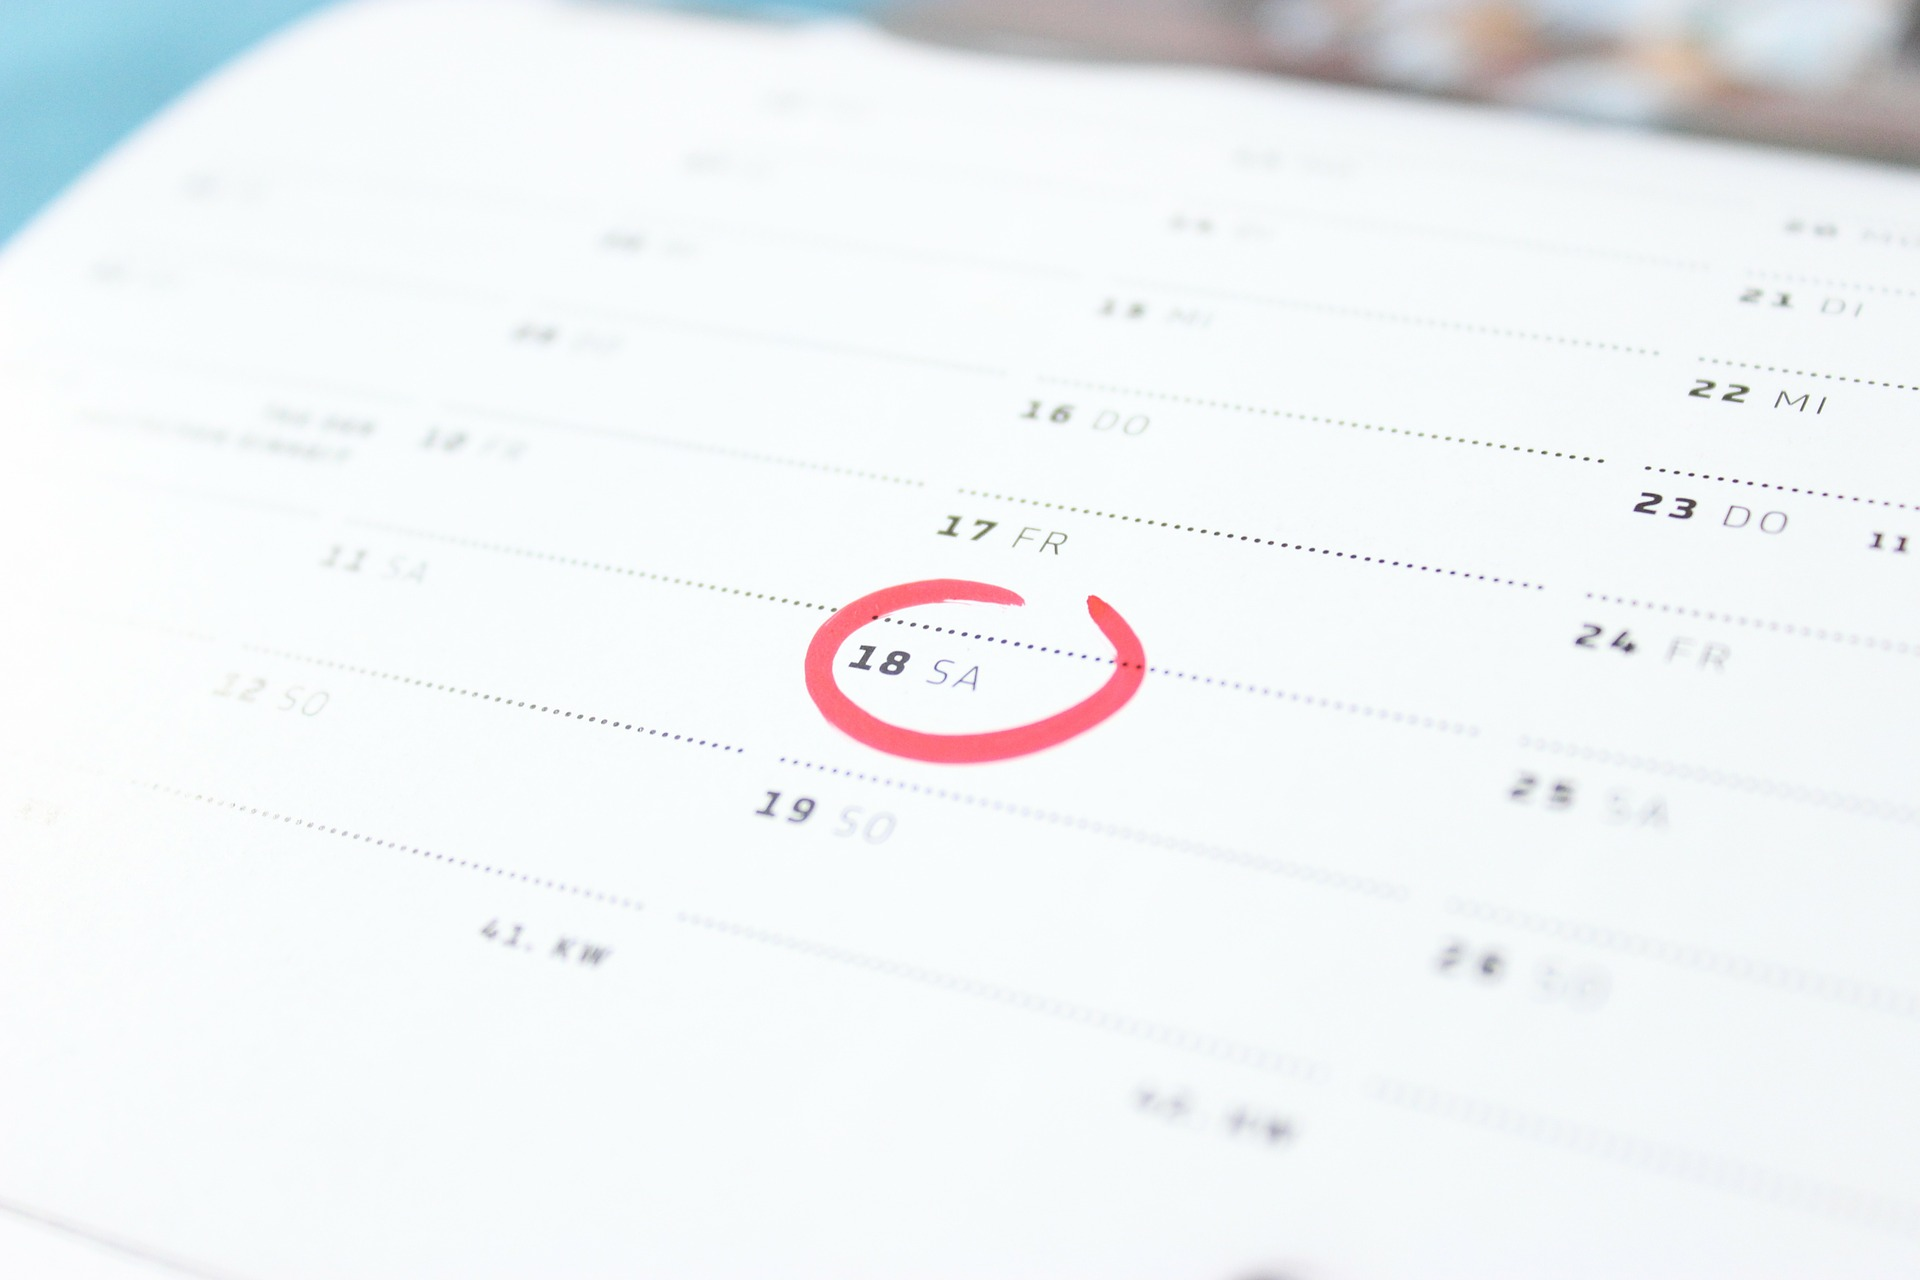 Summer of Law: Long-Weekend Sick Leave and Summer Fridays